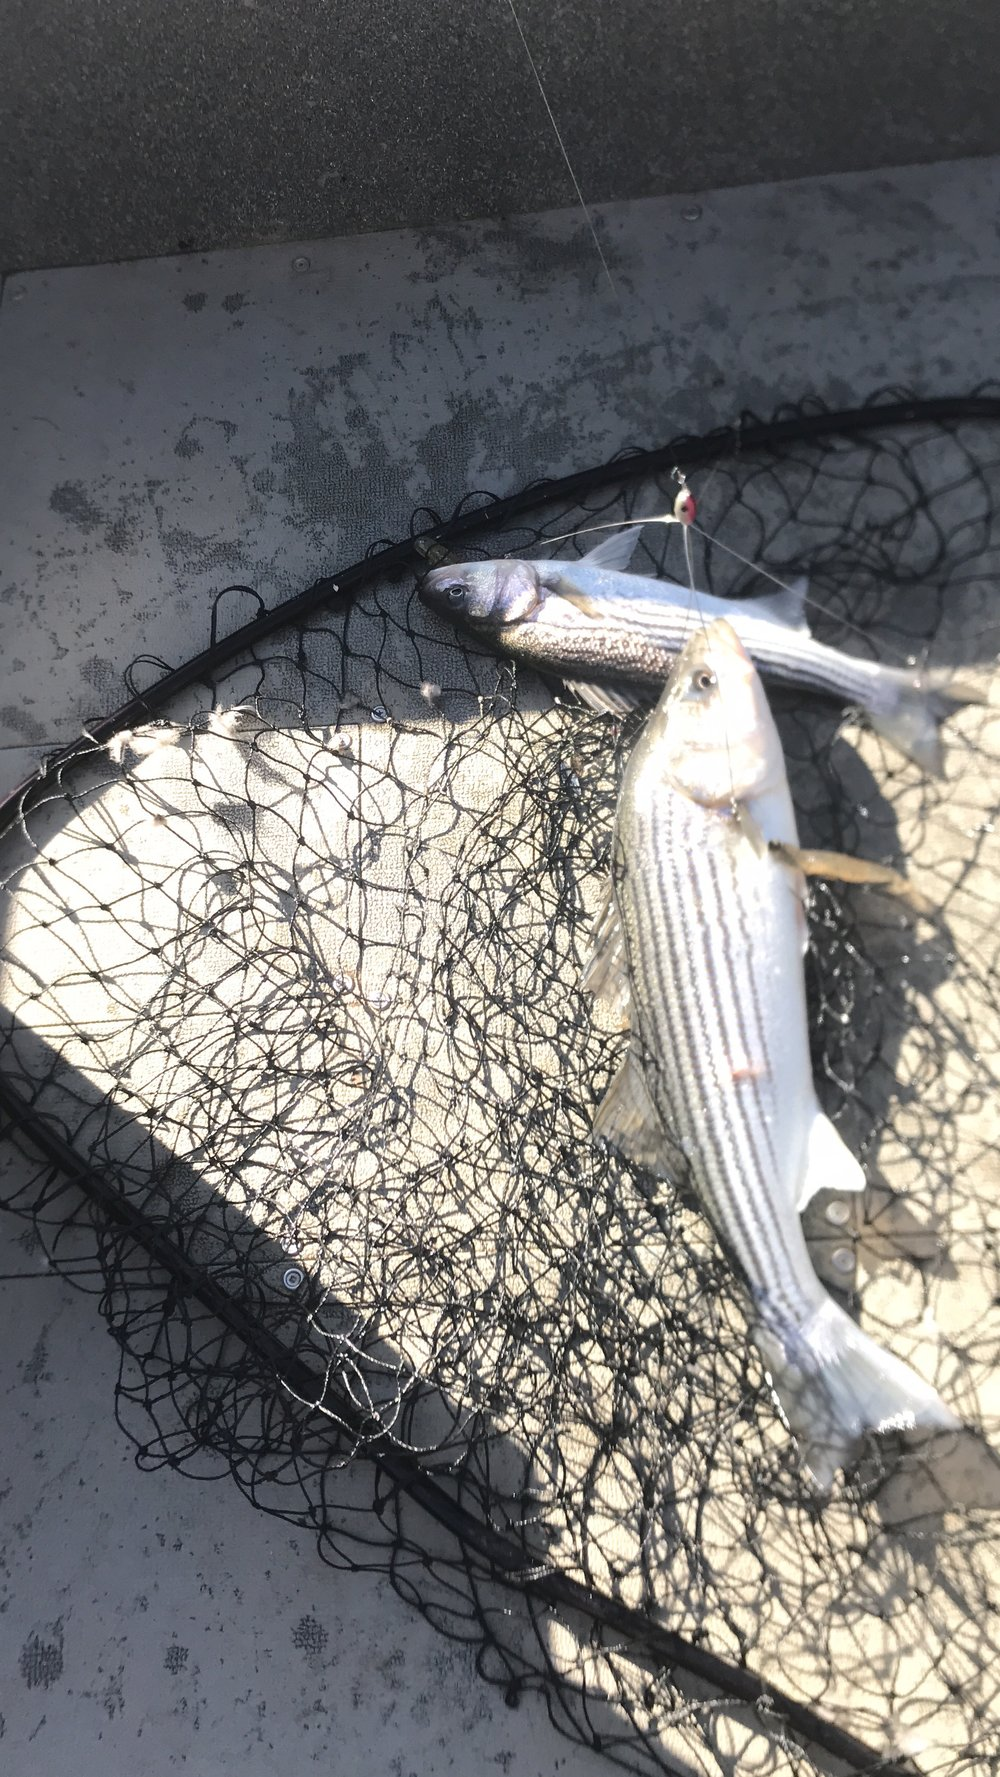 This pair of Sacramento River striped bass were brought to the boat on February 2, 2018 while fishing the Red Bluff, Ca region of the Sacramento River, here in Northern California. Striped Bass fishing guide Mike Rasmussen used the Alabama Rig to catch these feisty striped bass.